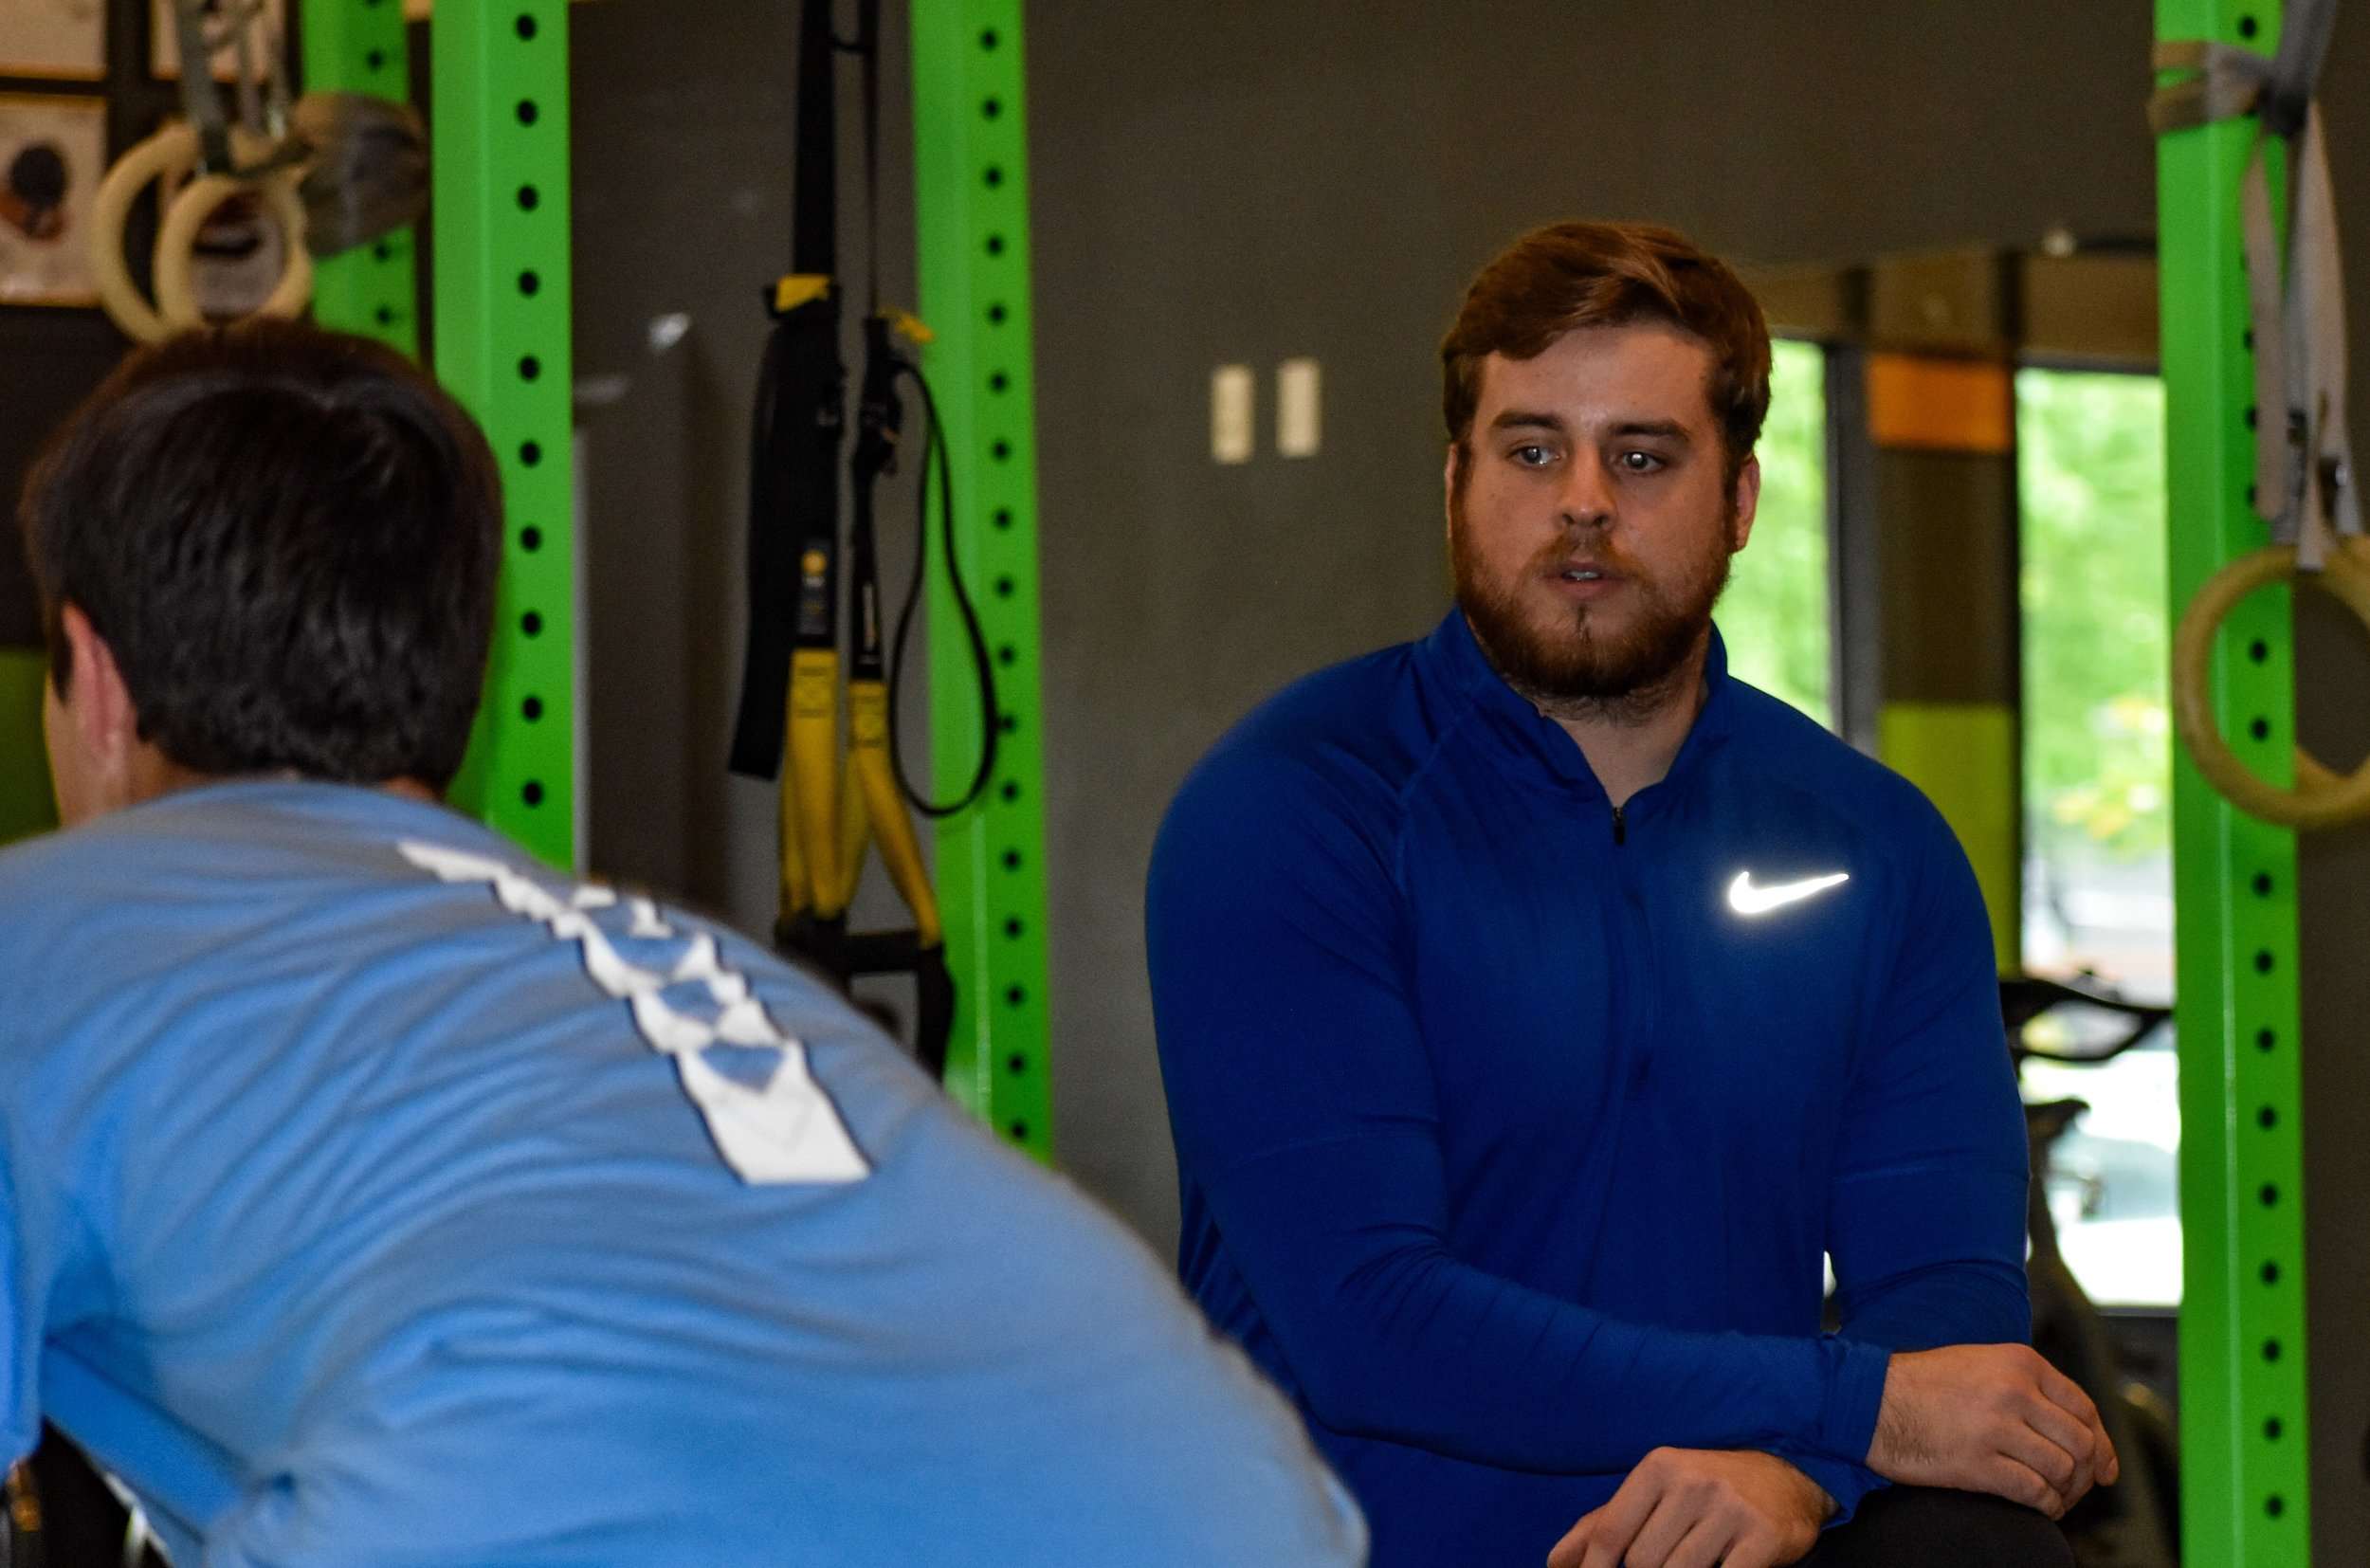 JAMES ANDREW   Head Sports Performance Coach – Westside Facility  Email - train@eforcesports.com   EDUCATION/CERIFICATIONS   Bachelors of Physical Activity and Fitness Studies – Linfield College  National Certification for Certified Personal Trainers – NCCPT  Certified ClinicalAthlete Weightlifting Certification – CCWC  AED / First AID / CPR   PLAYING EXPERINCE   Linfield College – Football  Powerlifting – State & Regional Champion   COACHING EXPERINCE    EForce 2018-Present   · Work closely with Sport Coaches, Physical Therapists and Sports Nutritionist to develop an integrated performance model for athlete development. Model built at elite level and scalable to all athletic levels.  · Provide daily specific training to the needs of youth, high school, and collegiate athletes through programming that focuses on long term athlete development.  · Designed transitional rehab workouts for return-to-play athletes.  · Gathered, analyzed, and interpreted performance data for local high school football teams  · Wrote individualized training programs to meet client needs  · Ran and managed sport performance group classes   24 Hour Fitness August 2018-March 2018   · Worked with various age populations  · Wrote individualized training programs to meet client needs  · Implemented monthly fitness tracking and goal setting plans for every client  · Ran and managed large group adult fitness classes   Linfield Home School P.E. February 2017-May 2017   · Ran and managed large group youth fitness classes  · Developed and Implemented Curriculum based on Long Term Athlete Model  · Utilized principles of skill acquisition to teach primary sports   Lakeridge High School 2014-Present   · Head Strength and Conditioning Coach for Lakeridge football program  · Offensive line coach freshman and varsity  · Youth Football Clinics for OL/DL